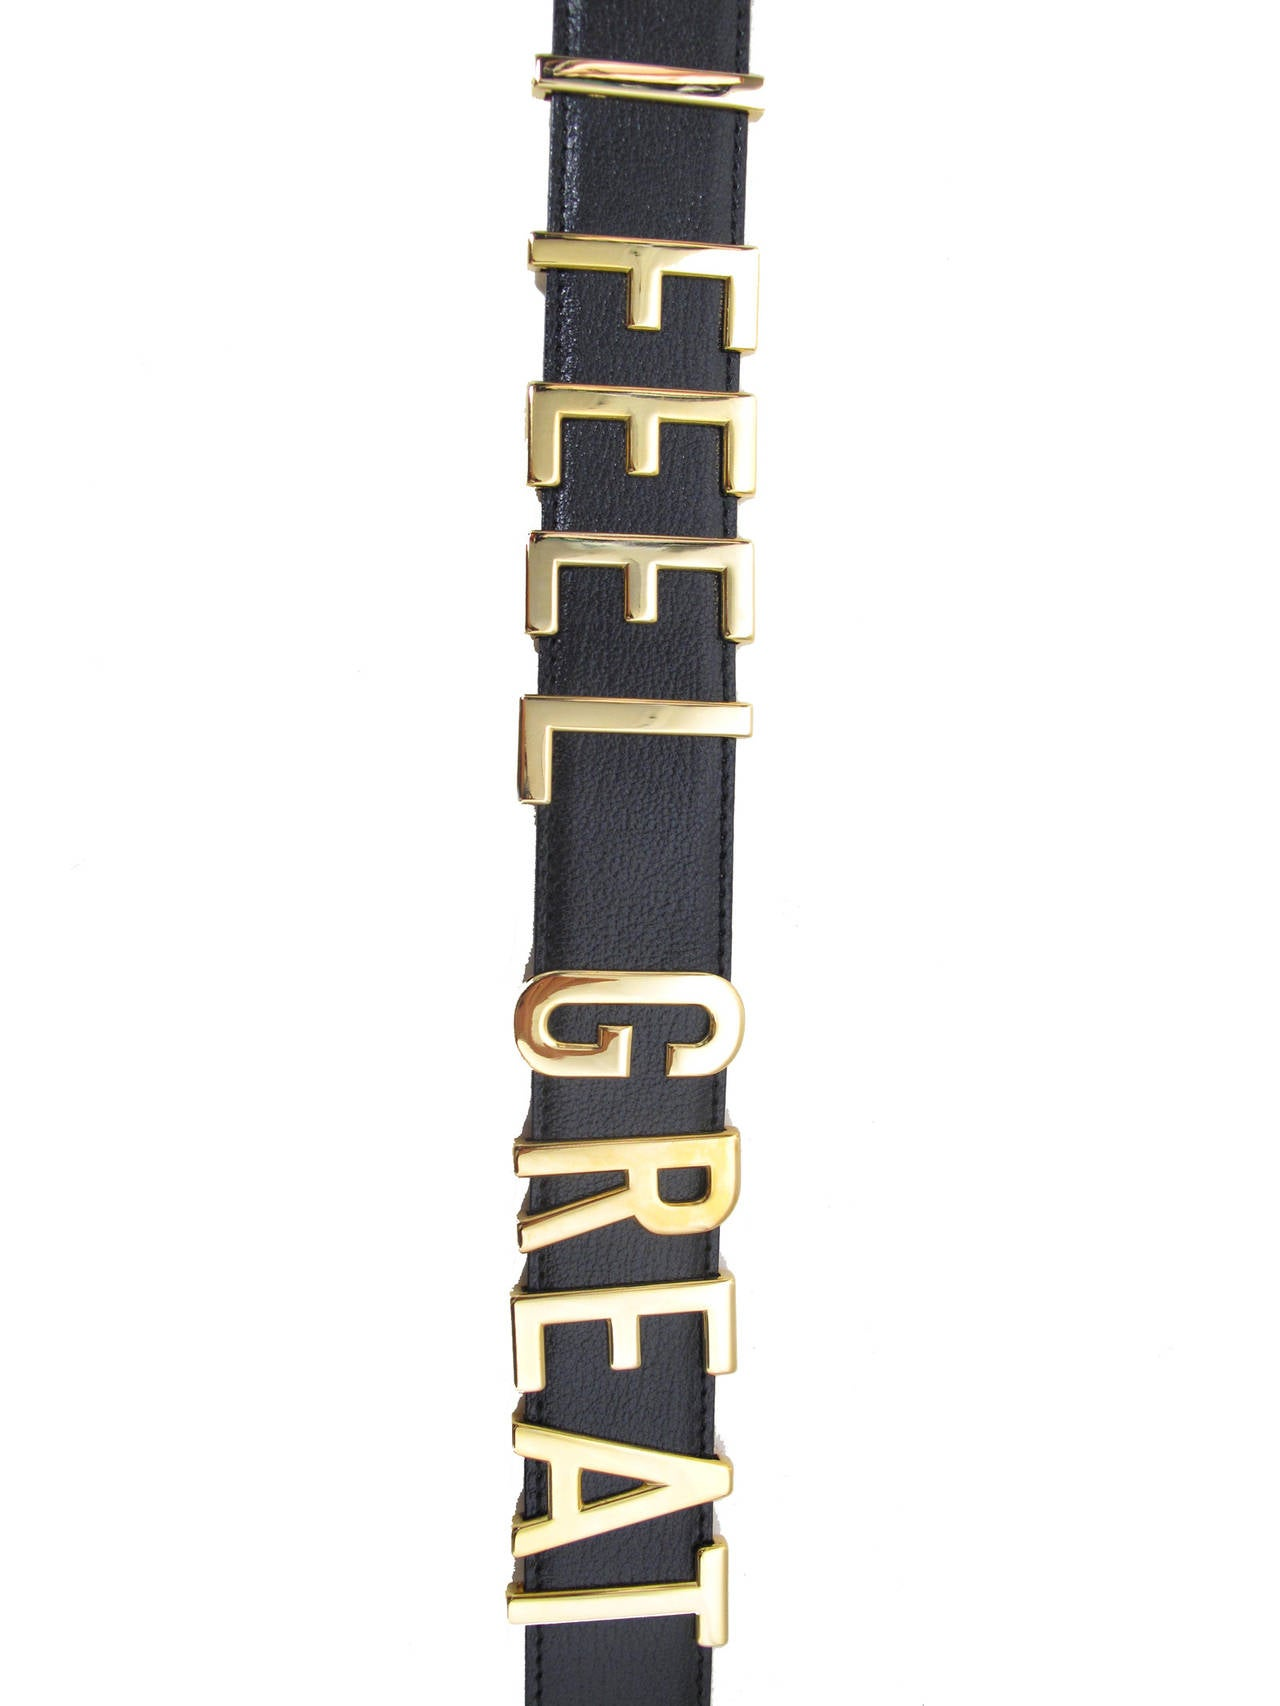 "Rare Moschino 1990s ""I FEEL GREAT"" Moveable Letters Waist Belt. Black leather belt with gold tone lettering.  Condition: Excellent, never worn, new in box with original tag.  Fits a 25 1/2"" , 26 1/2"" and largest 27"" waist."